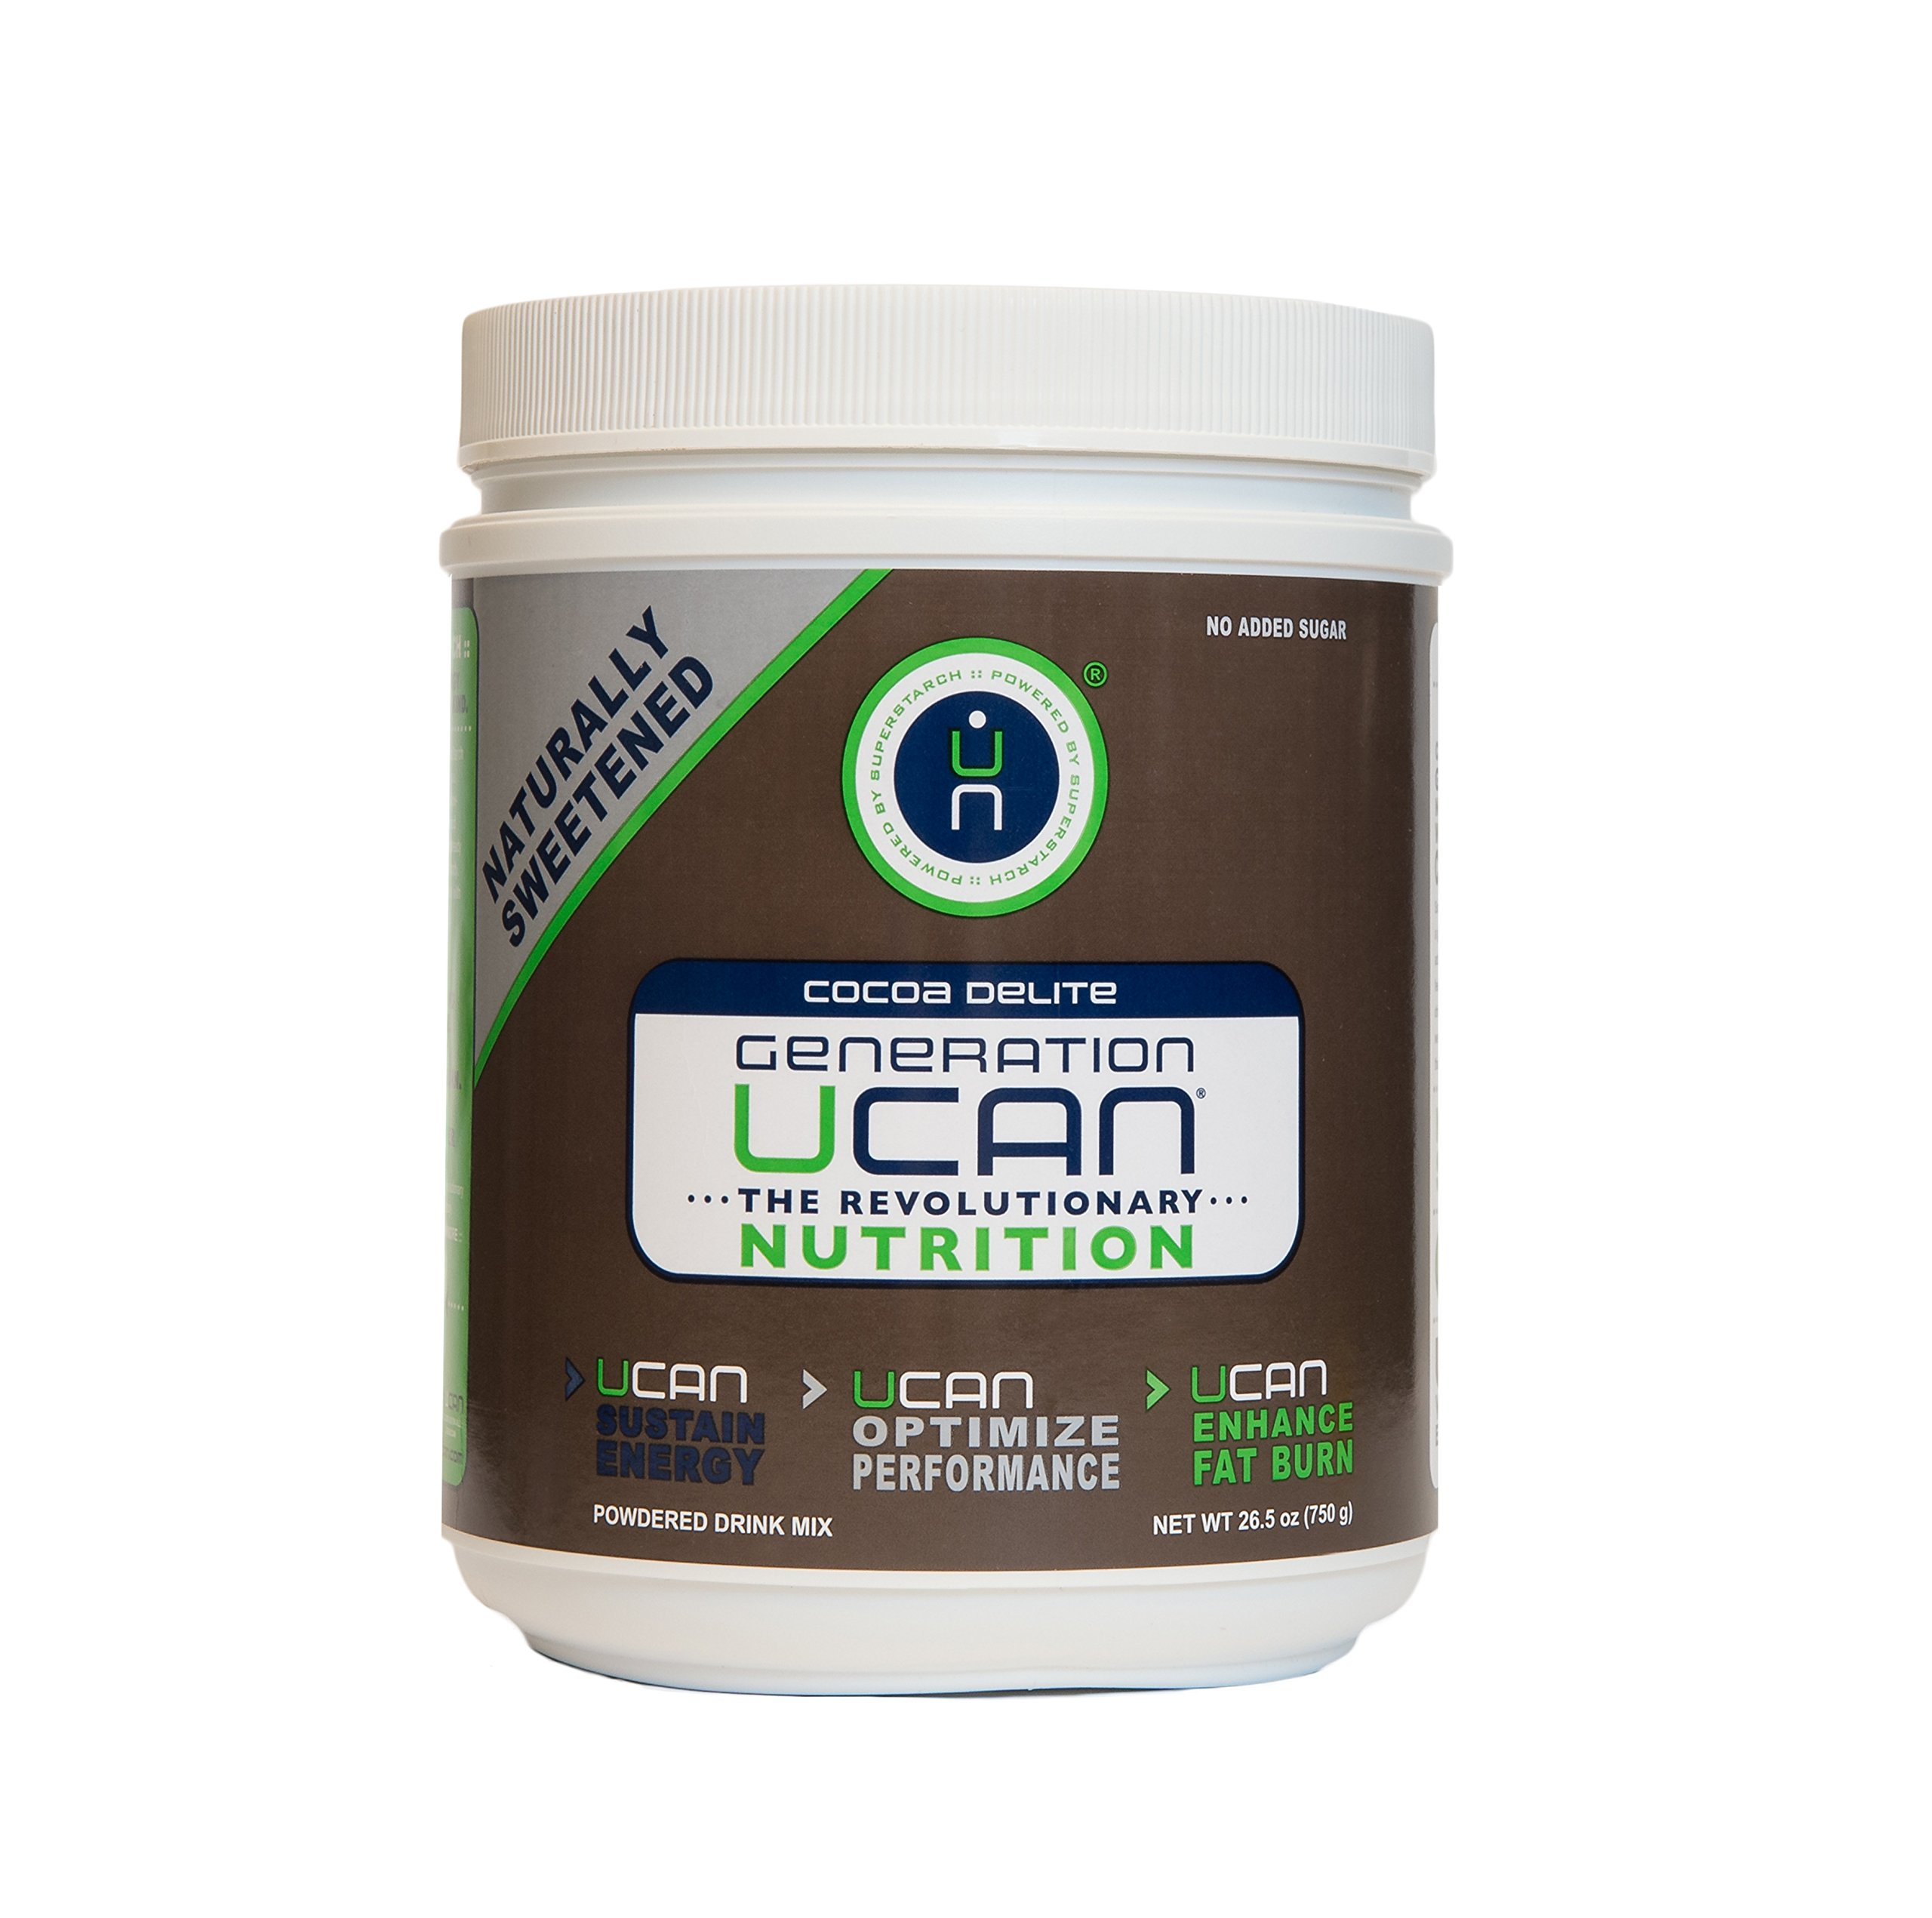 Ucan Energy Drink